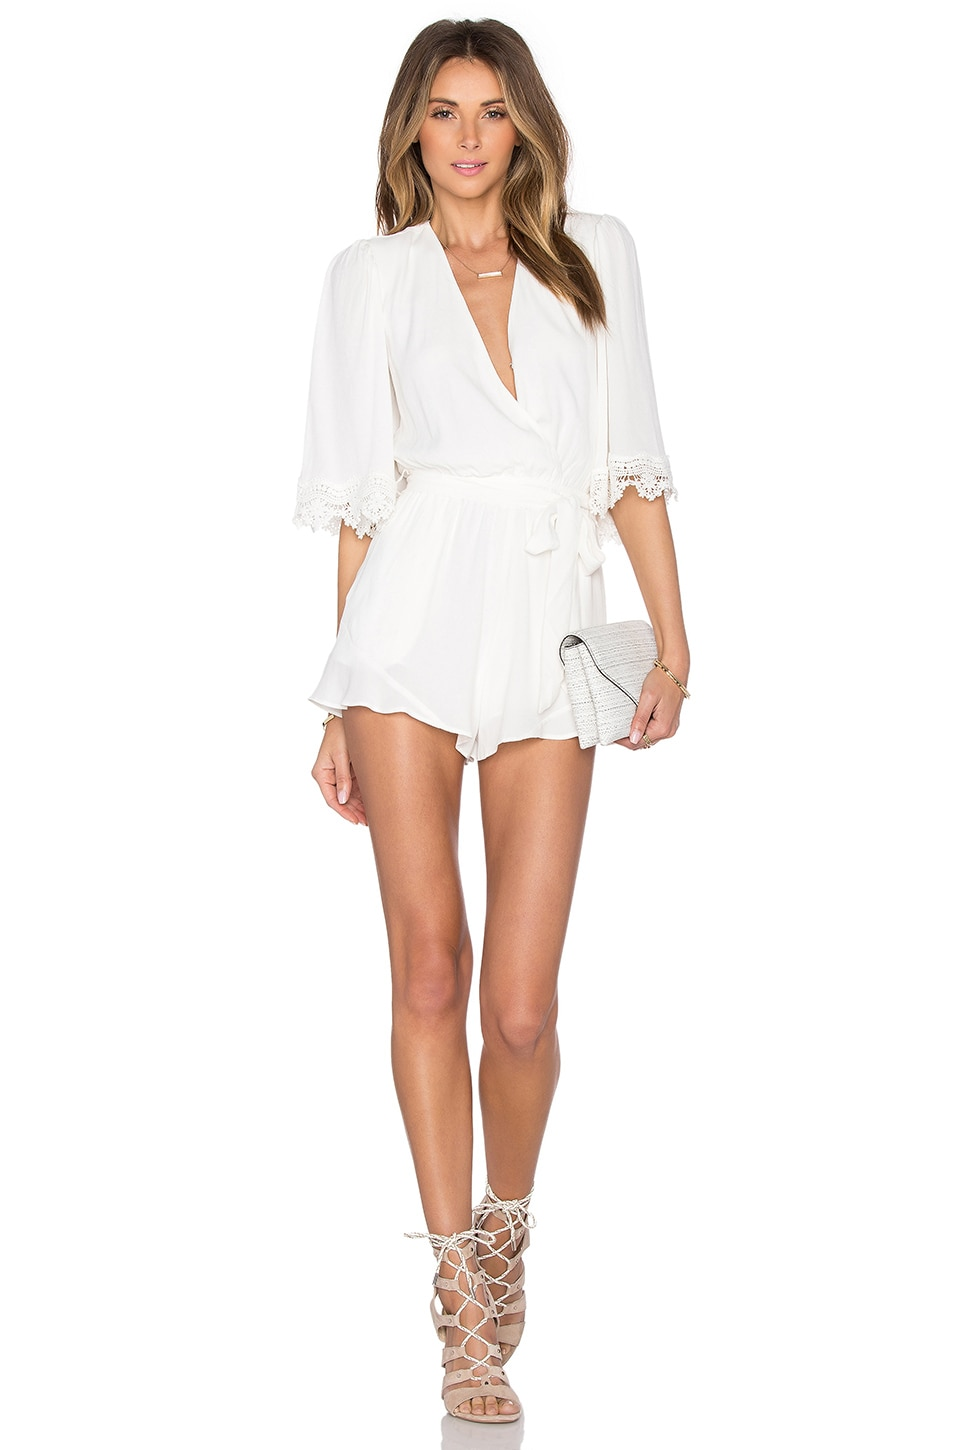 Lovers + Friends Reese Romper in Ivory